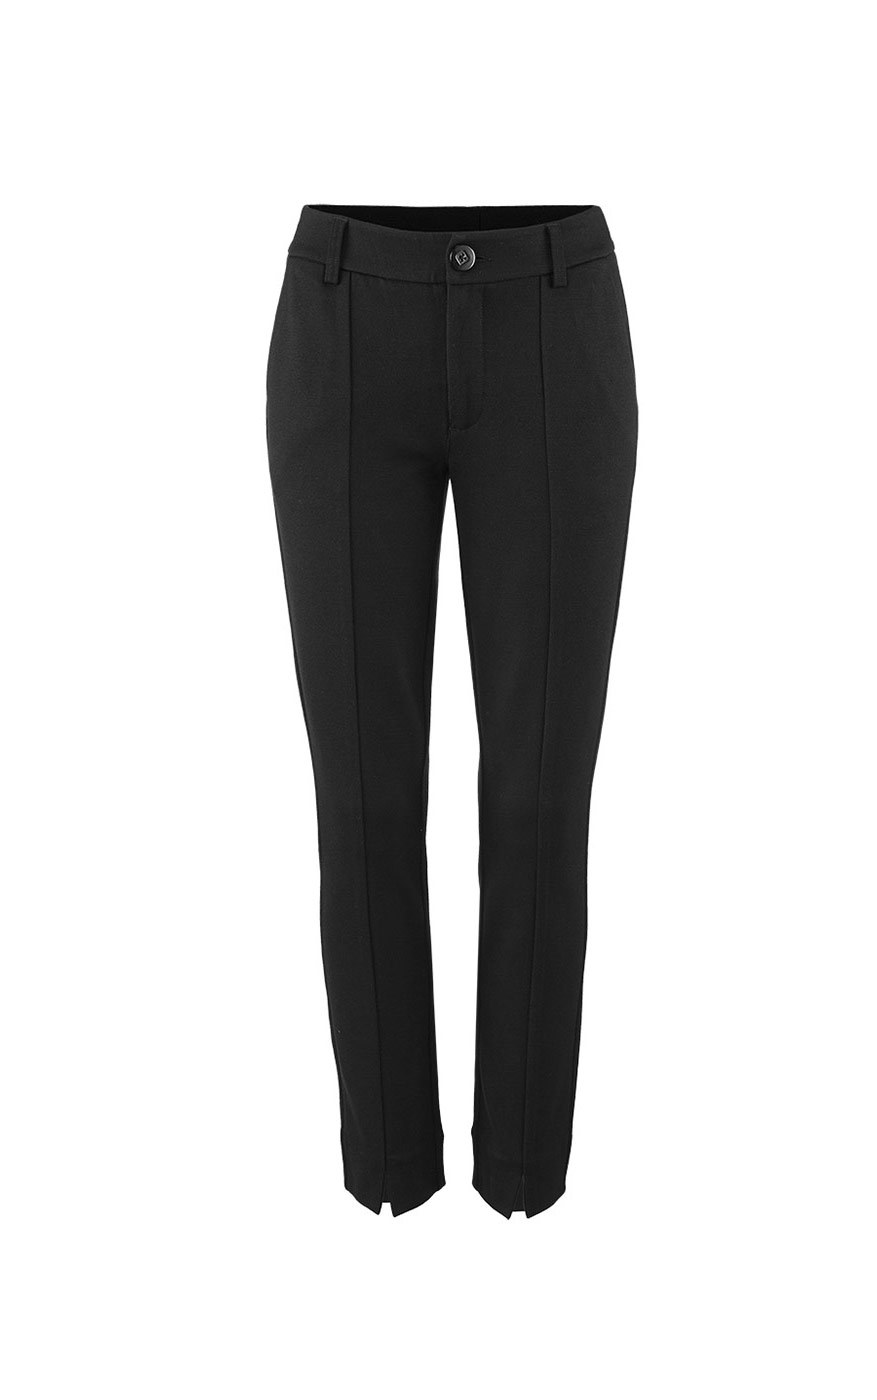 cabi's Agency Trouser